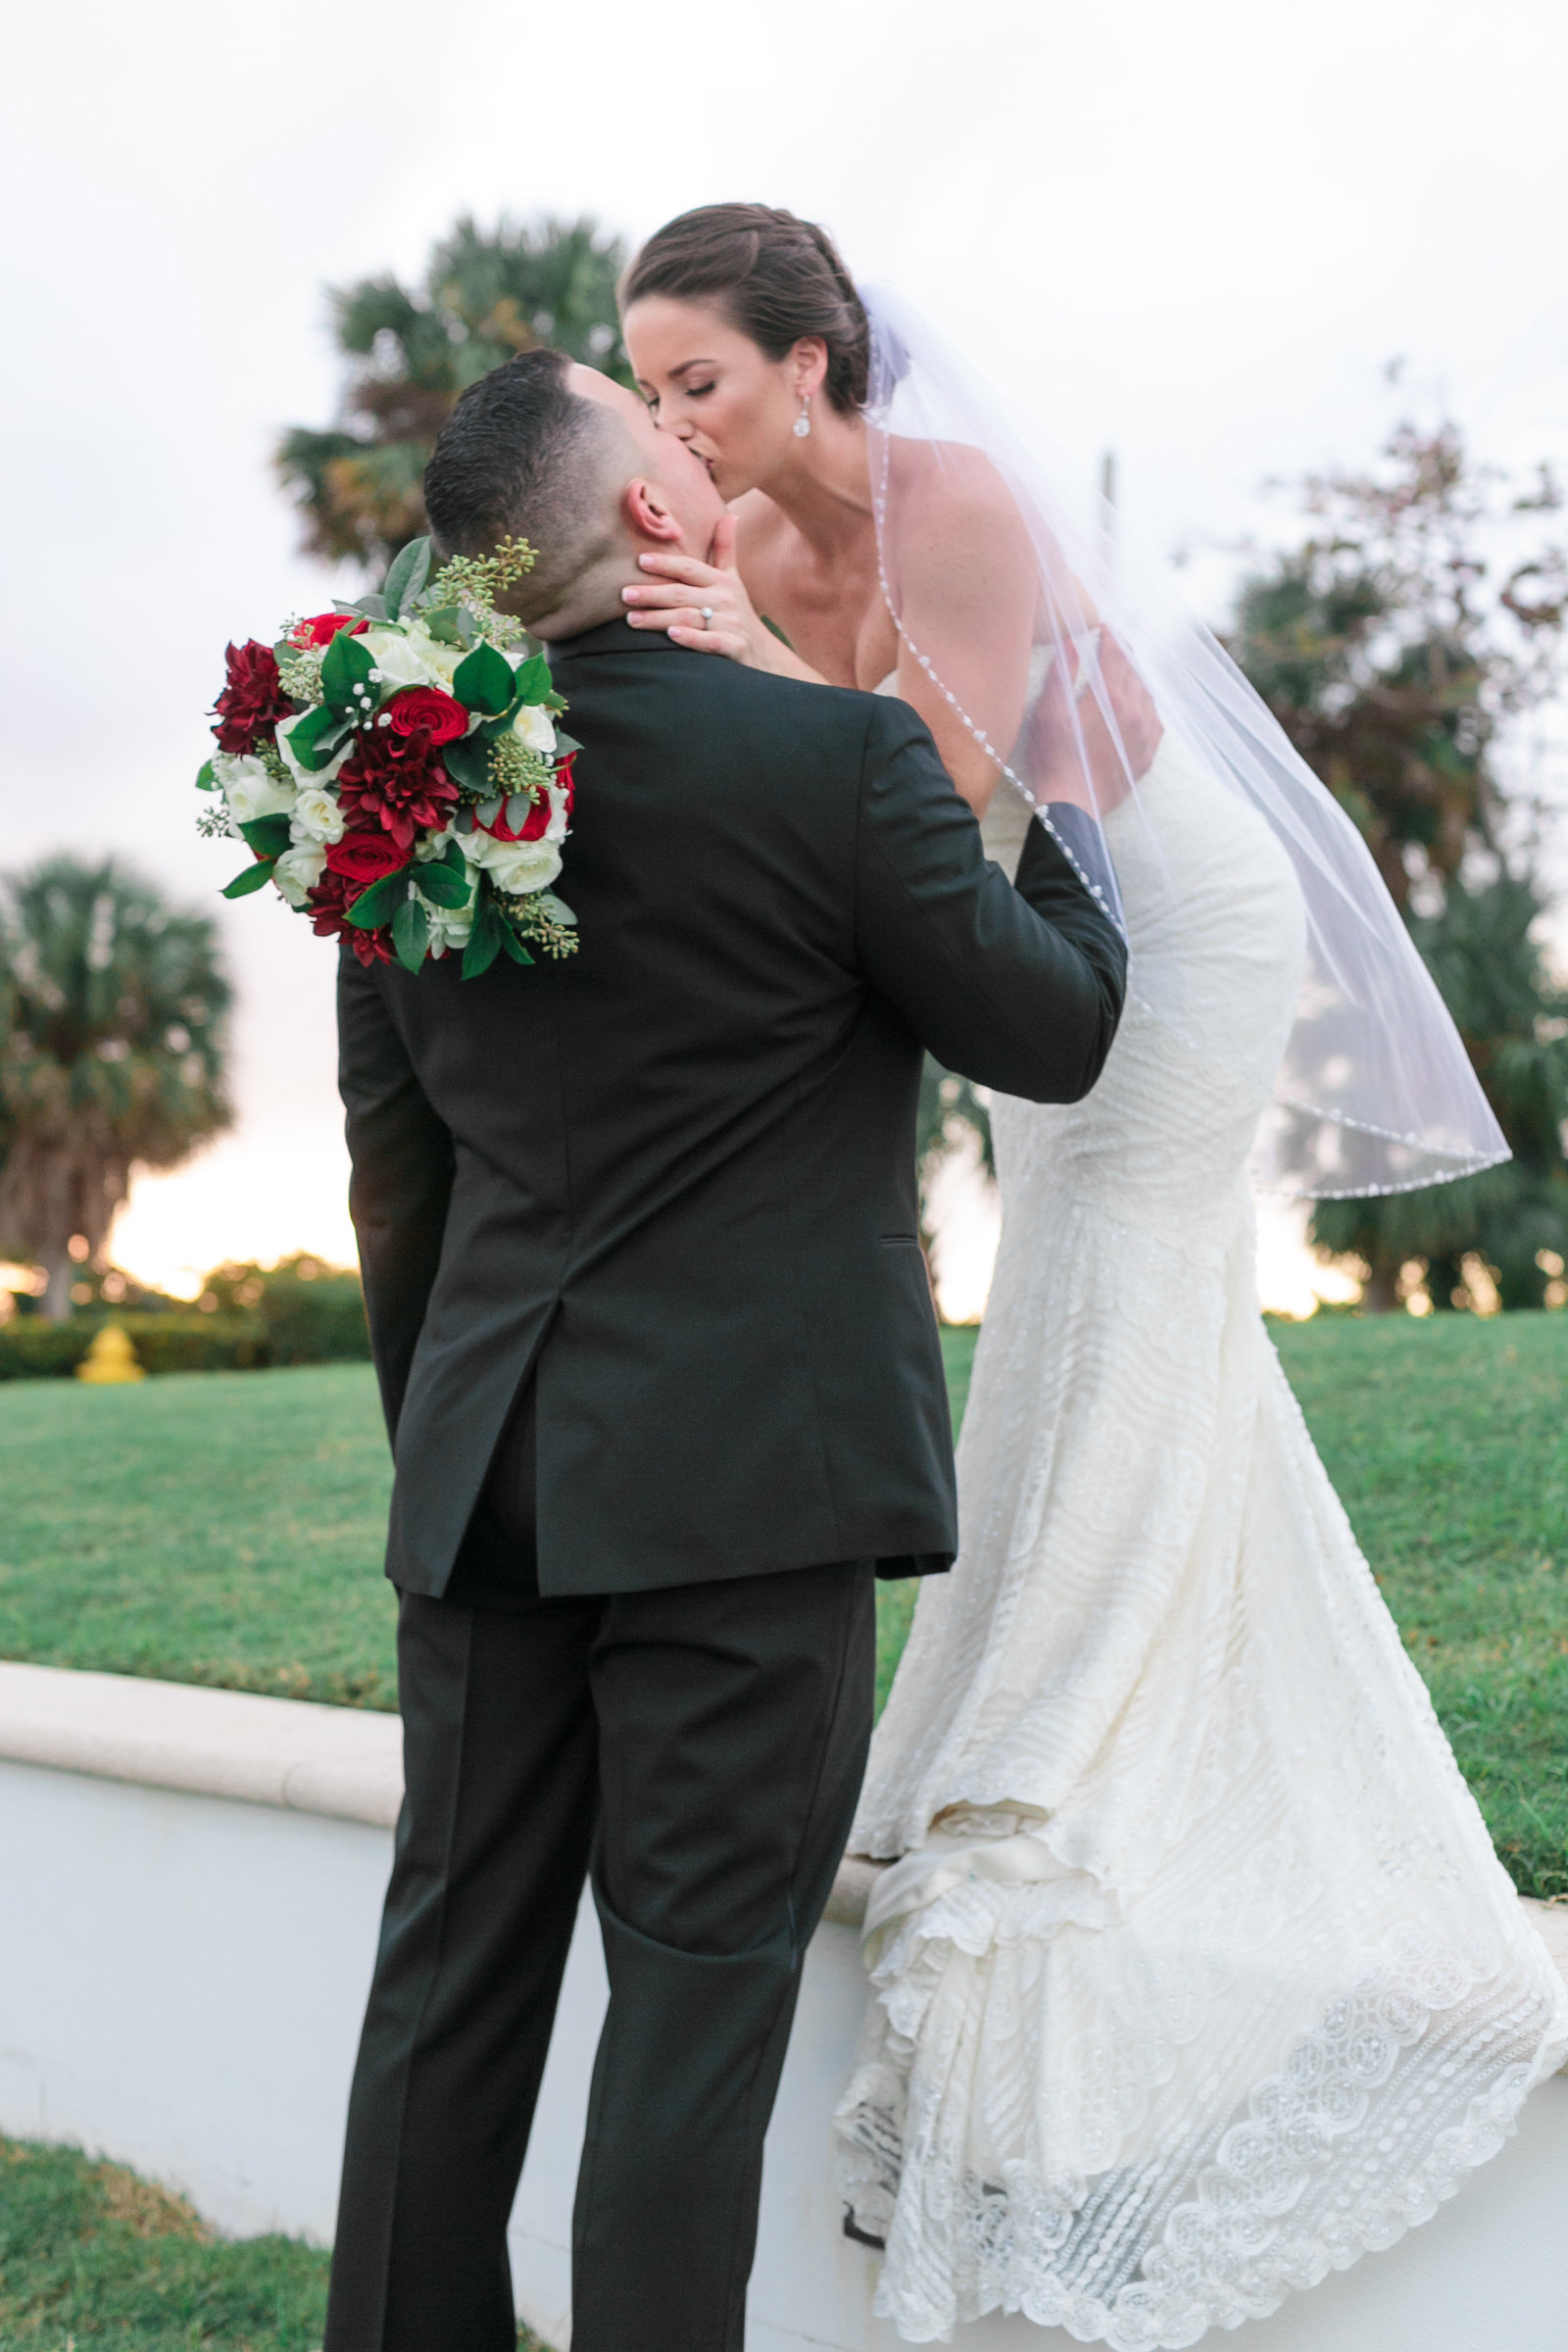 Bride kissing groom while standing on the grass